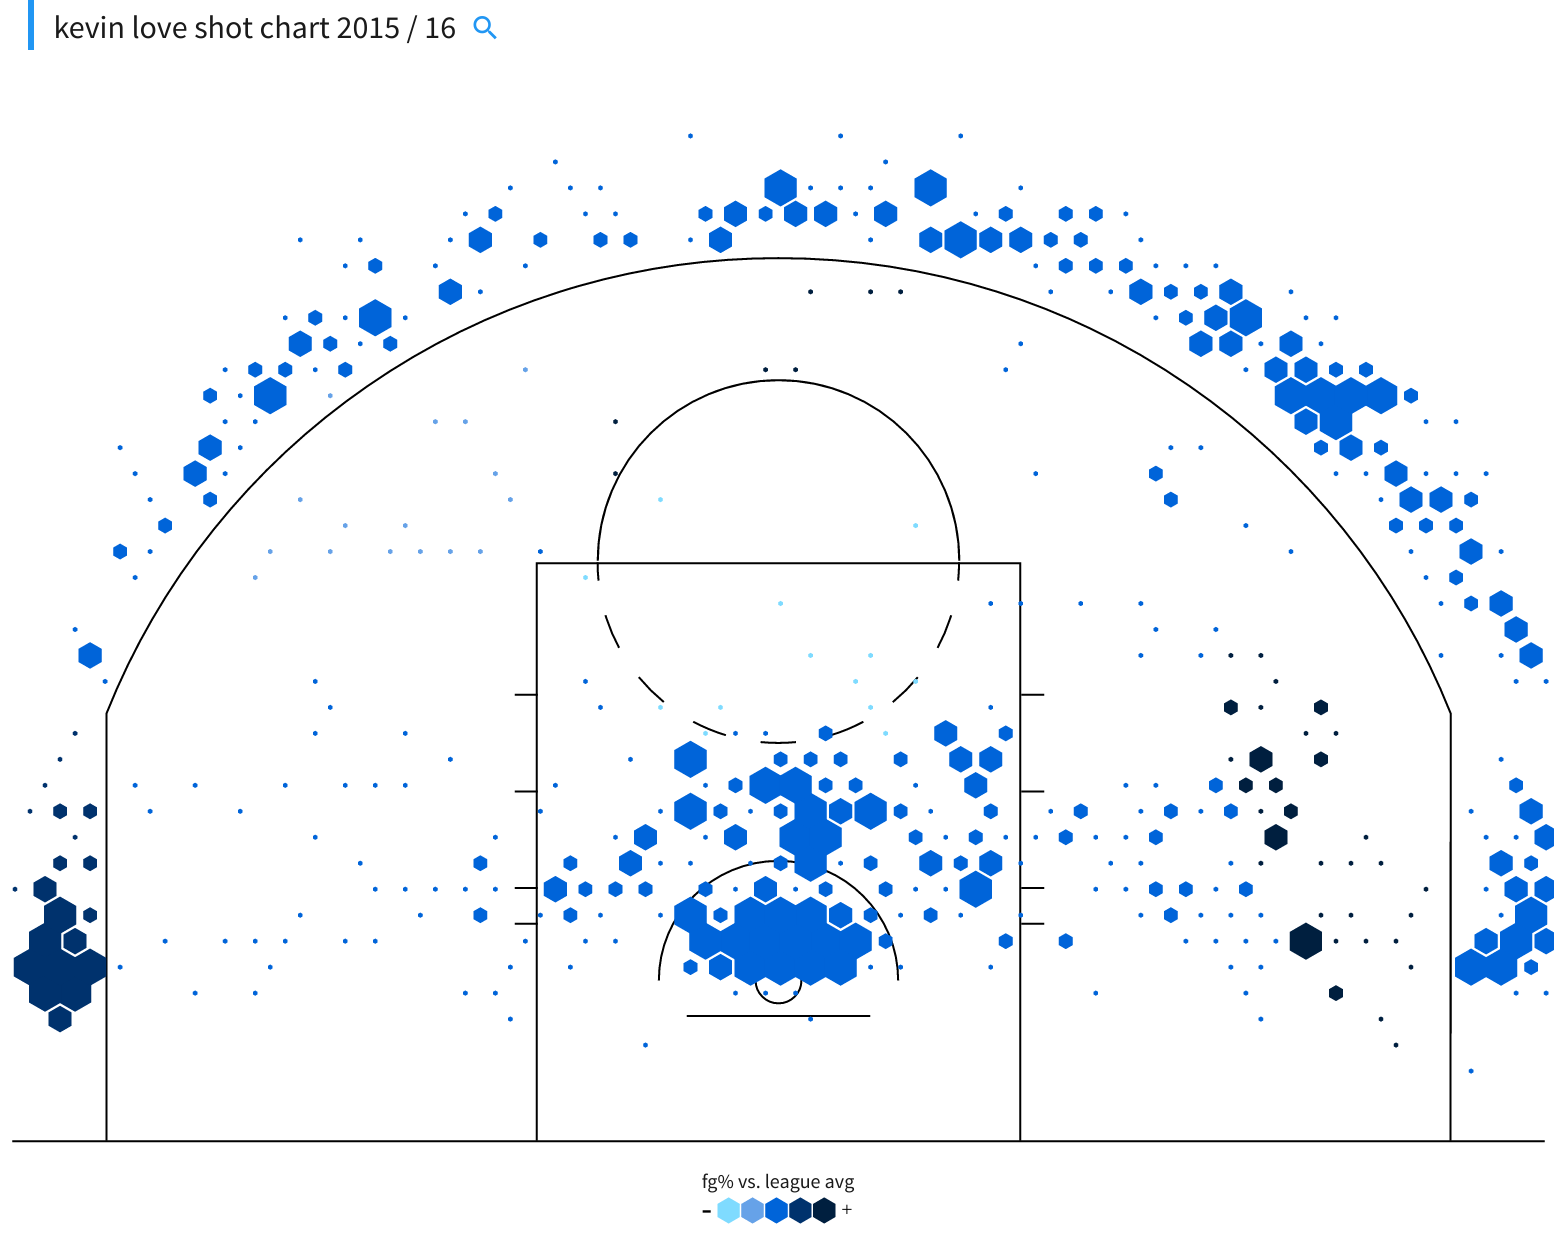 Kevin Love shot chart 2015-16